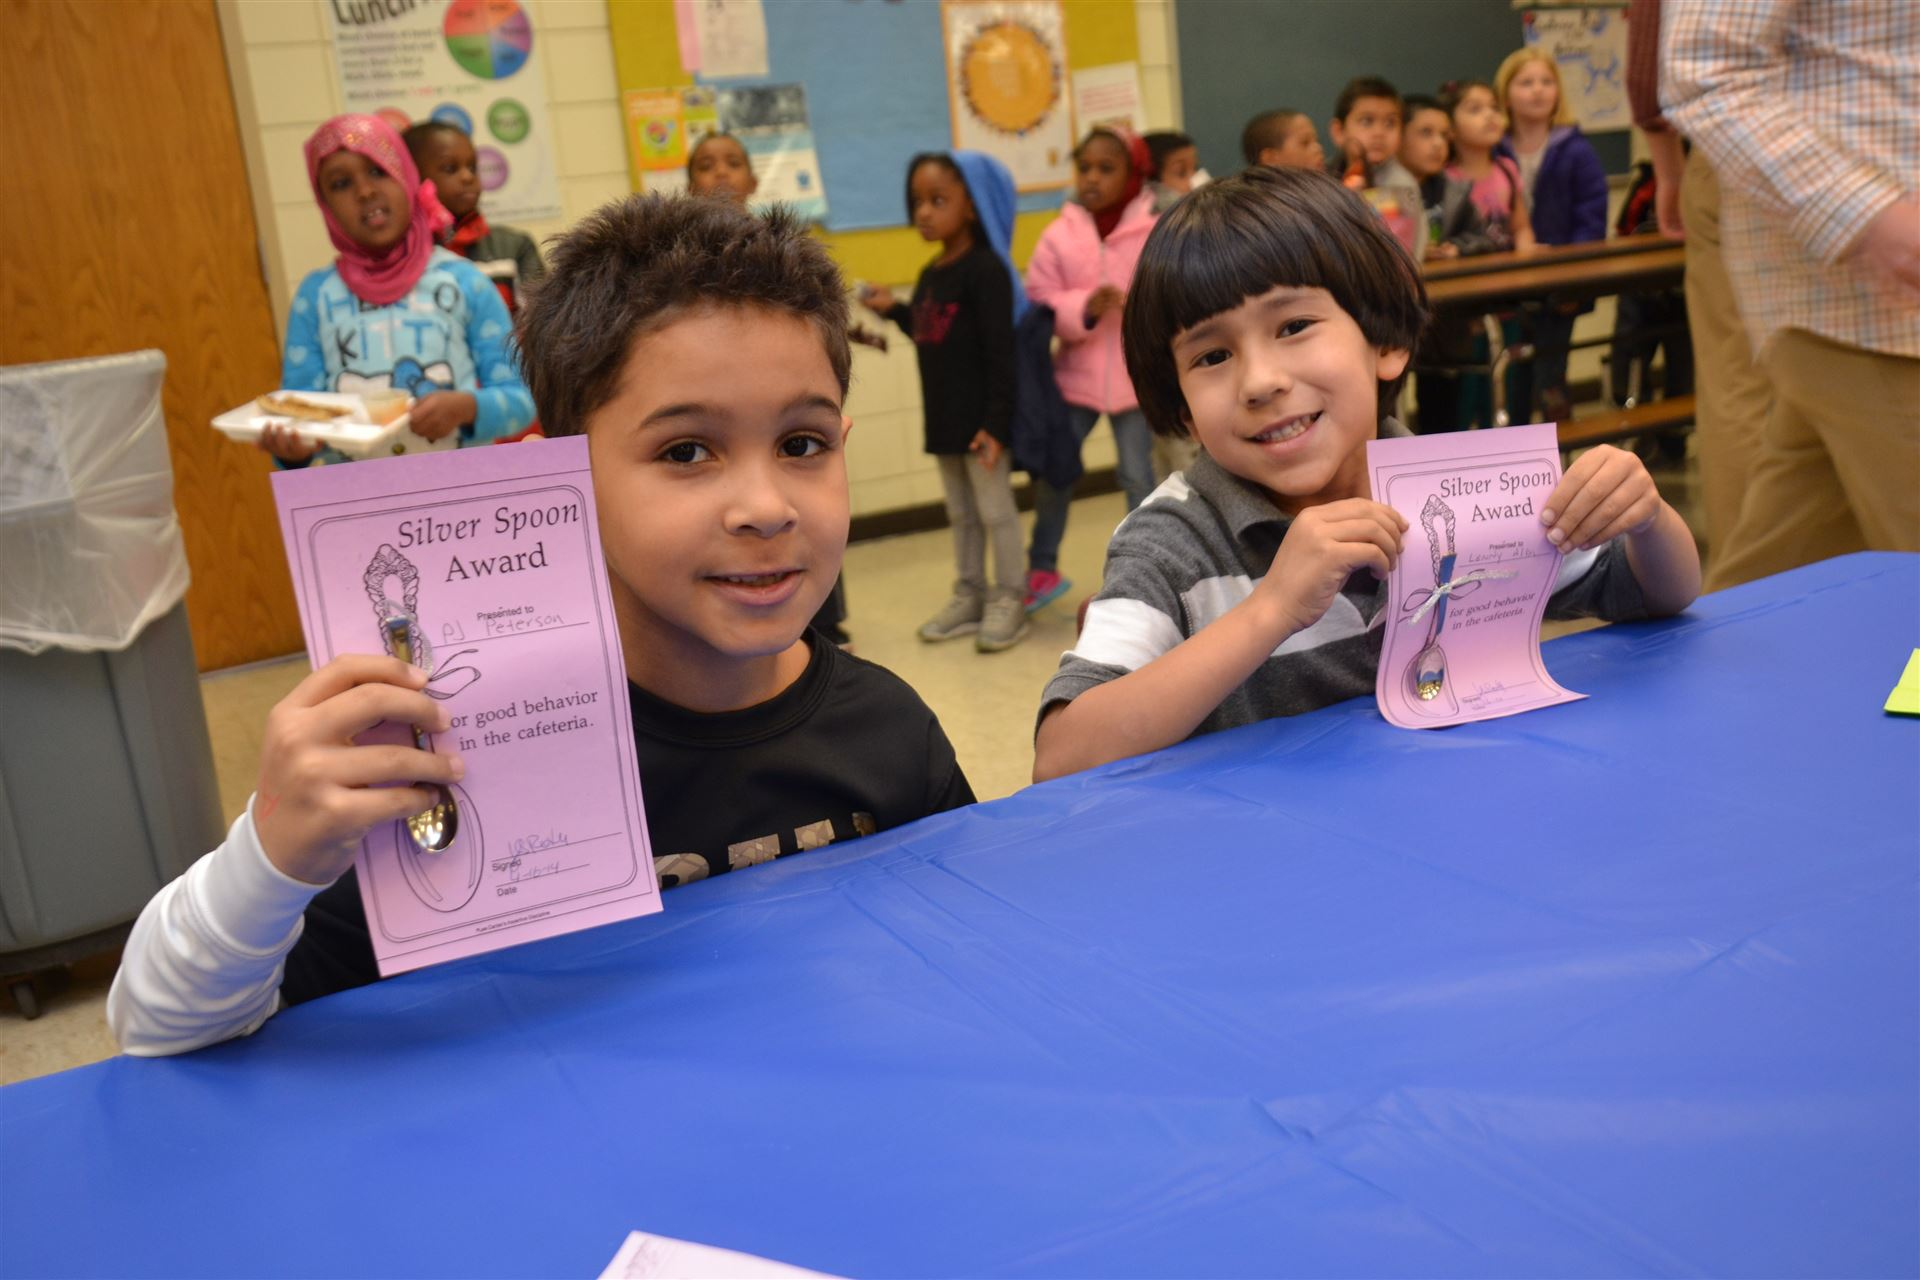 Students Rewarded for Positive Behavior at Pointview